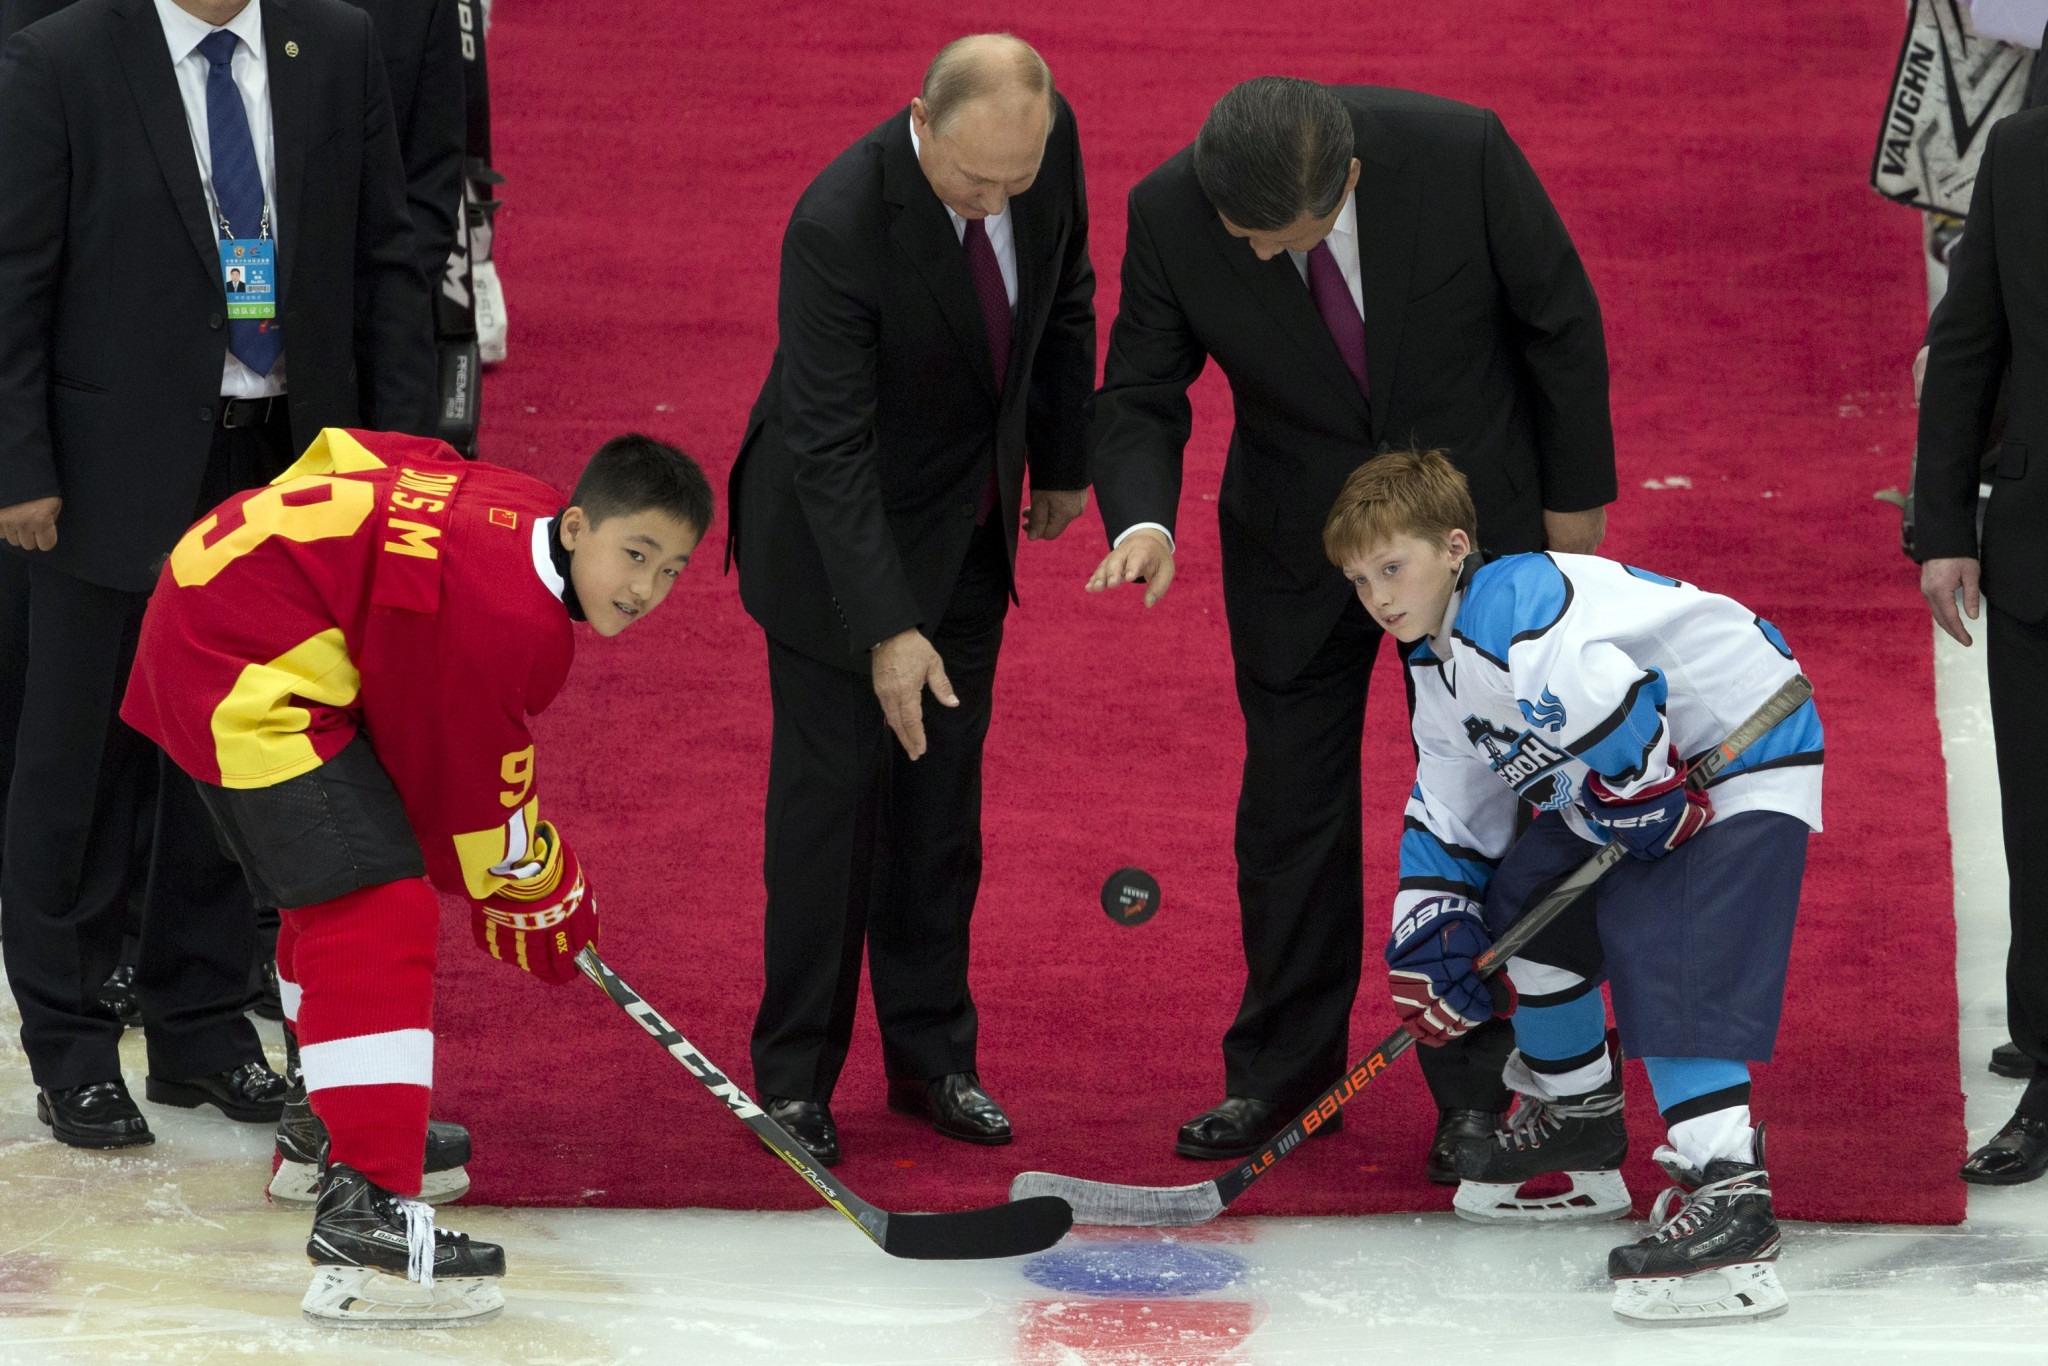 The youth team ice hockey match took place in Tianjin ©Getty Images